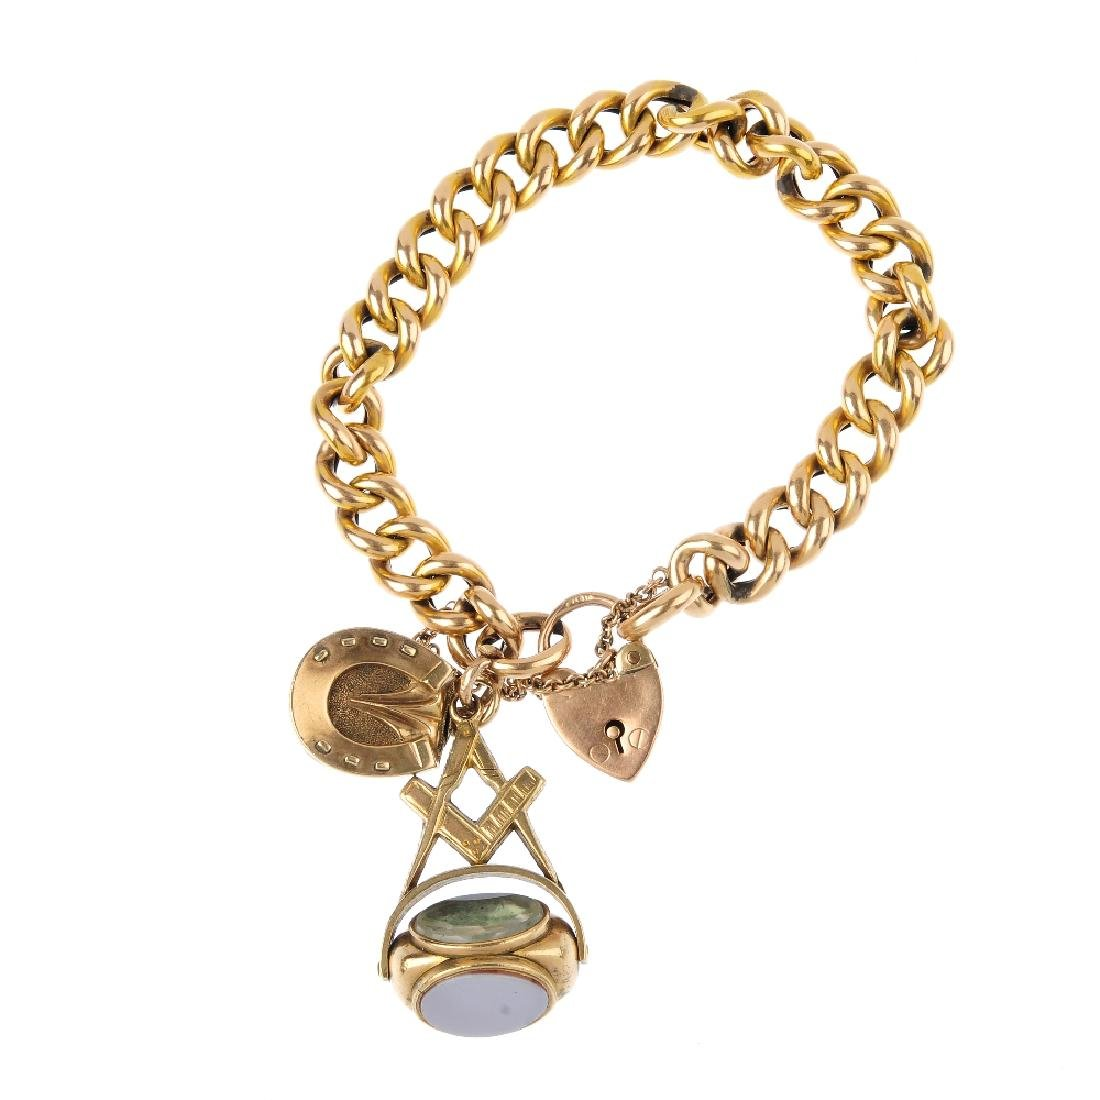 An early 20th century gold bracelet. Designed as a